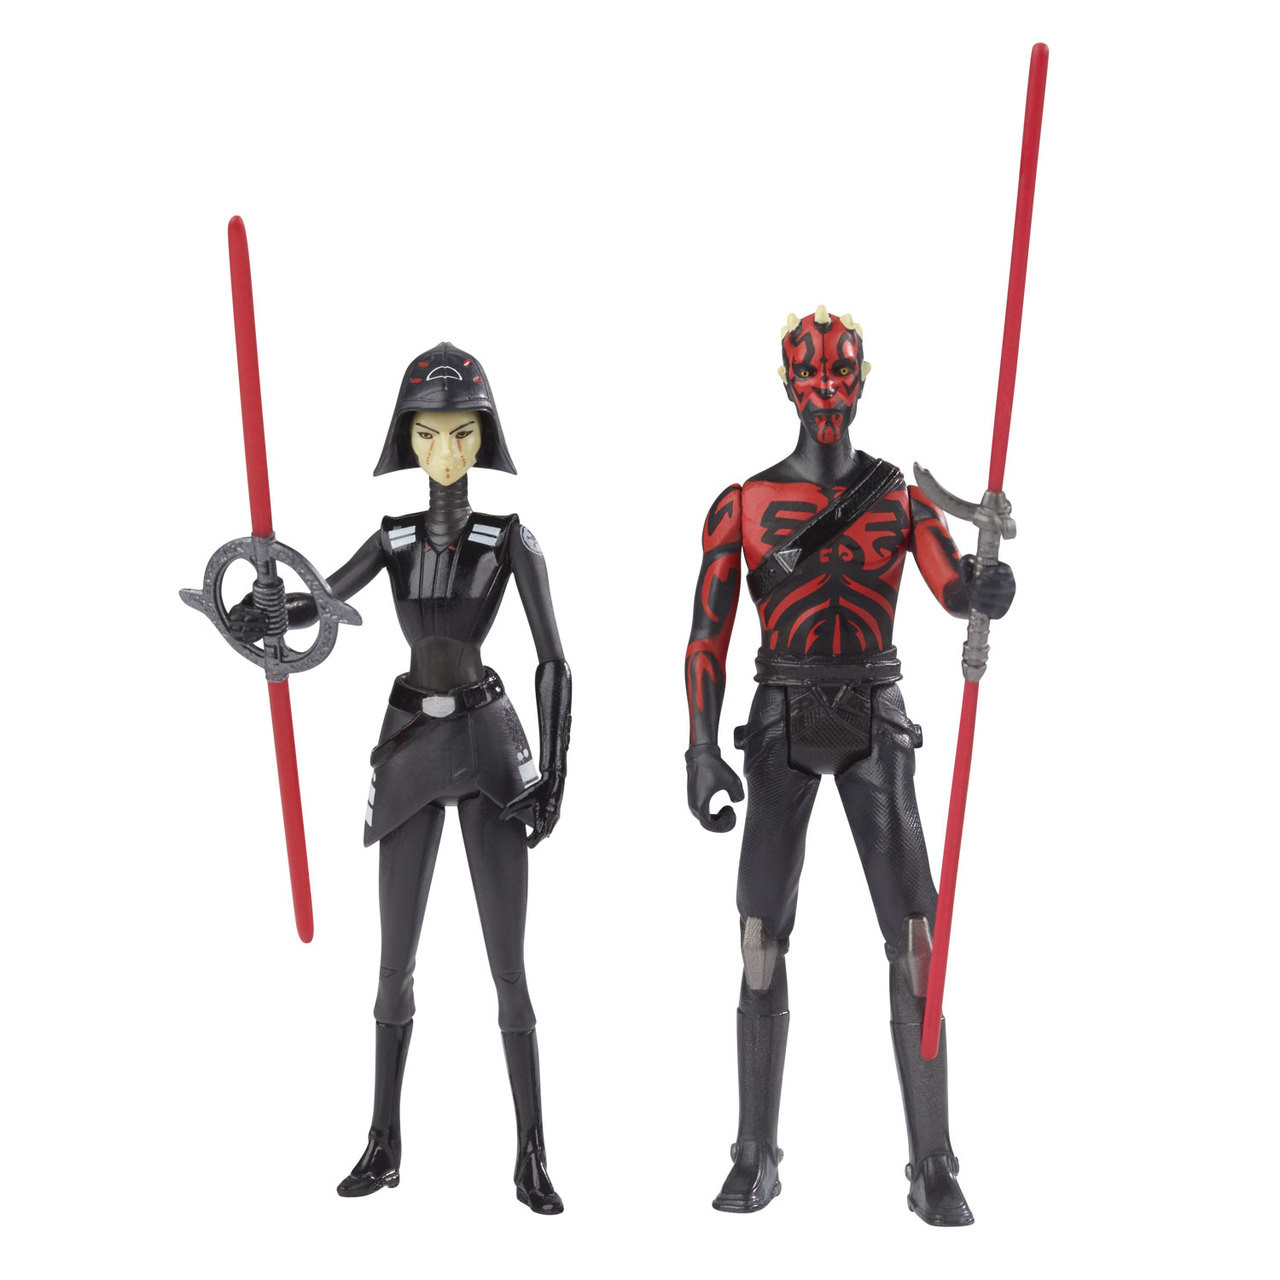 "Star Wars Rebels 3.75/"" Seventh Sister Inquisitor VS Darth Maul Figures by Hasbro"